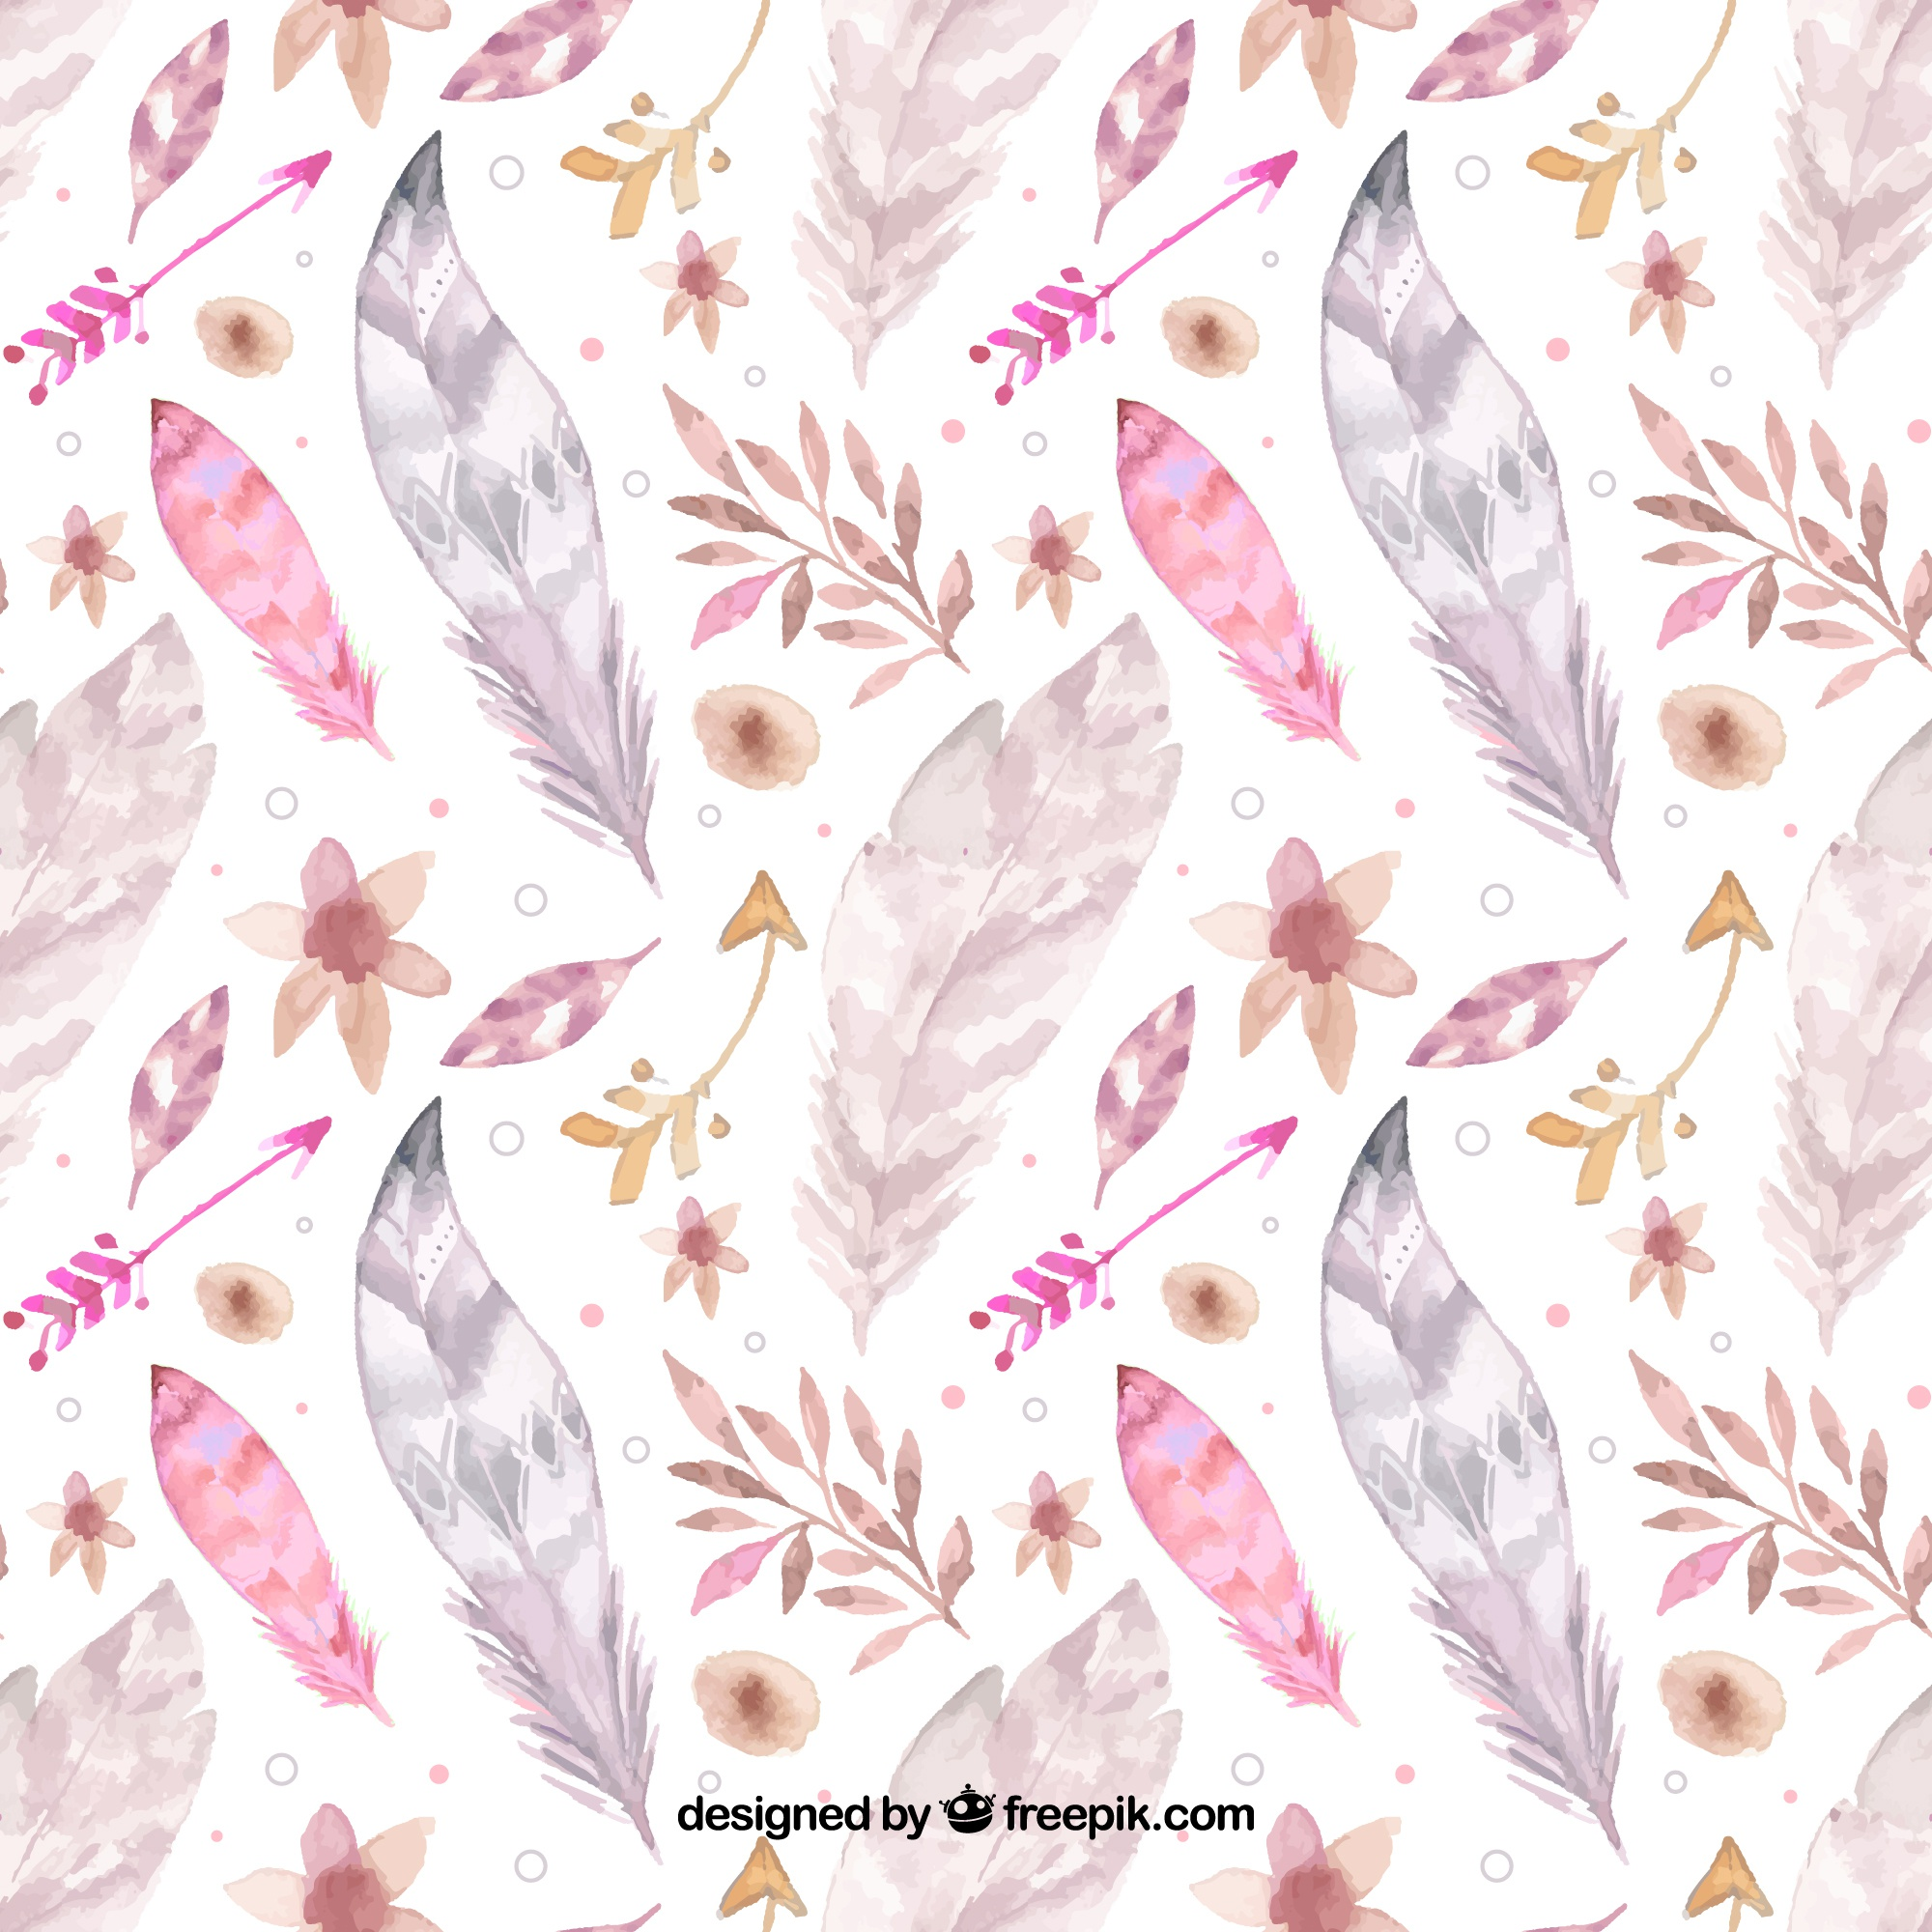 Boho pattern with watercolor feathers